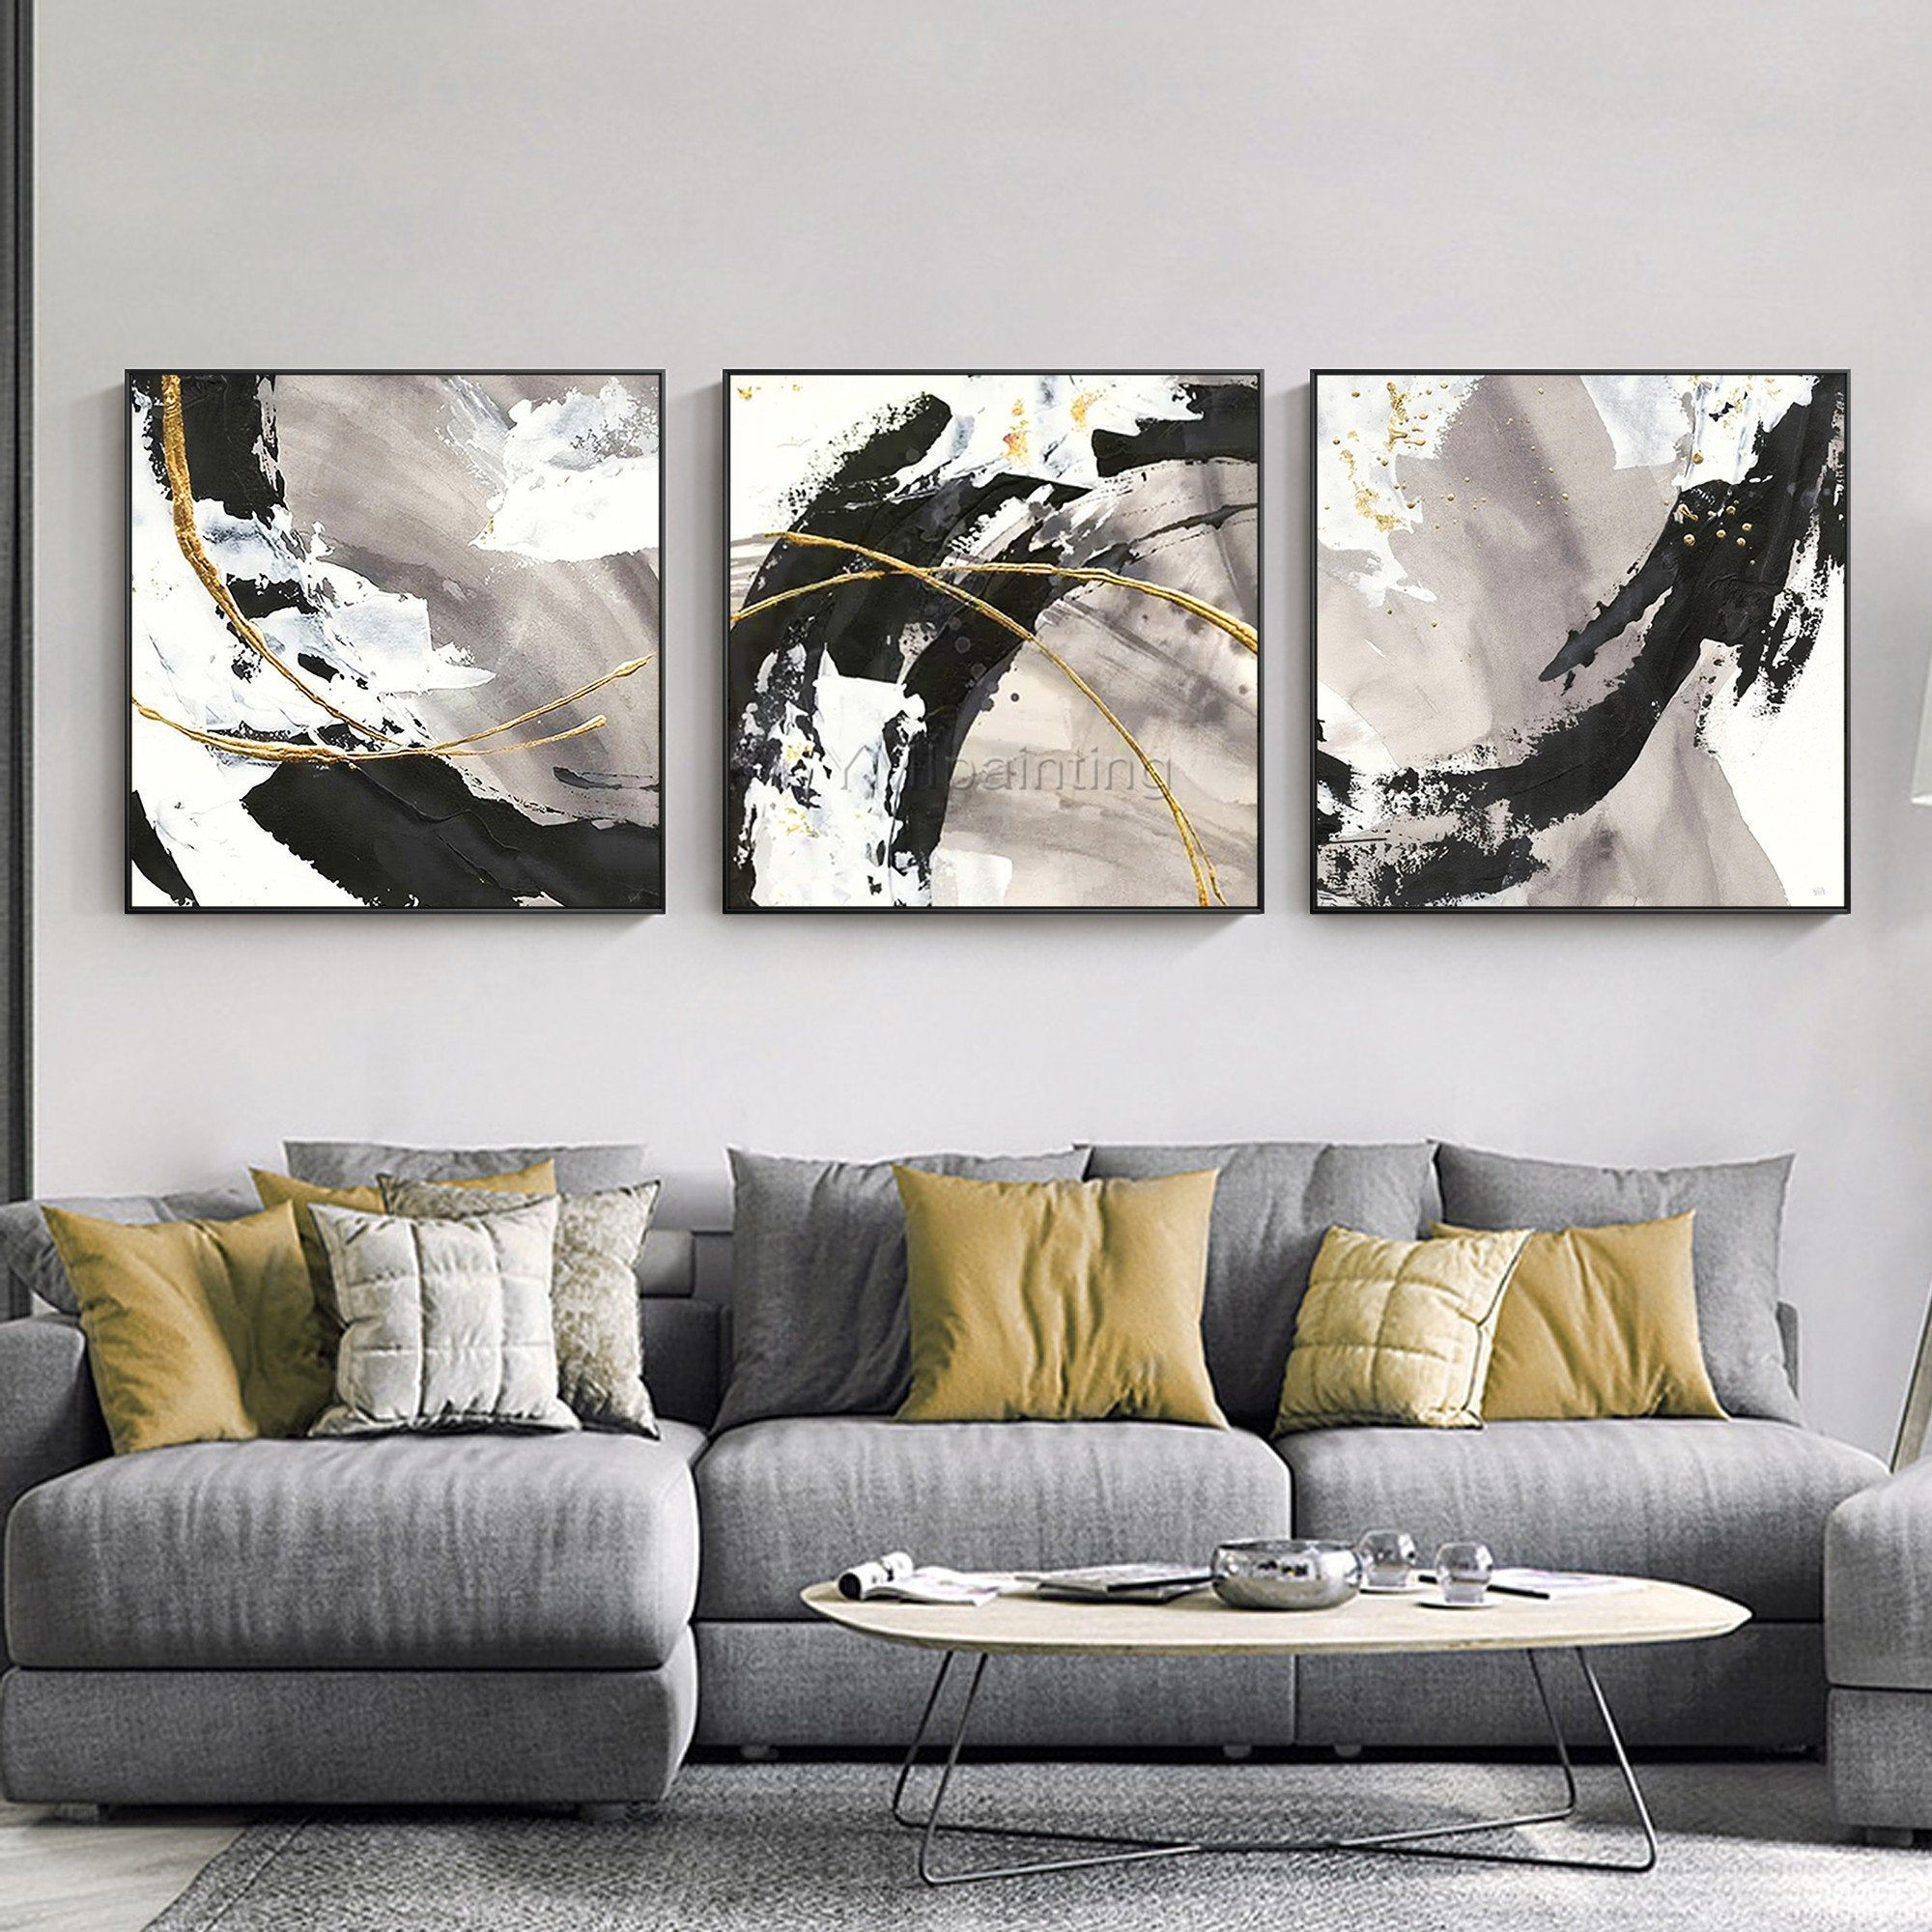 3 Pieces Gold Art Abstract Paintings On Canvas Set Of 3 Wall Etsy In 2021 Multi Canvas Painting Abstract Canvas Painting 3 Piece Canvas Art